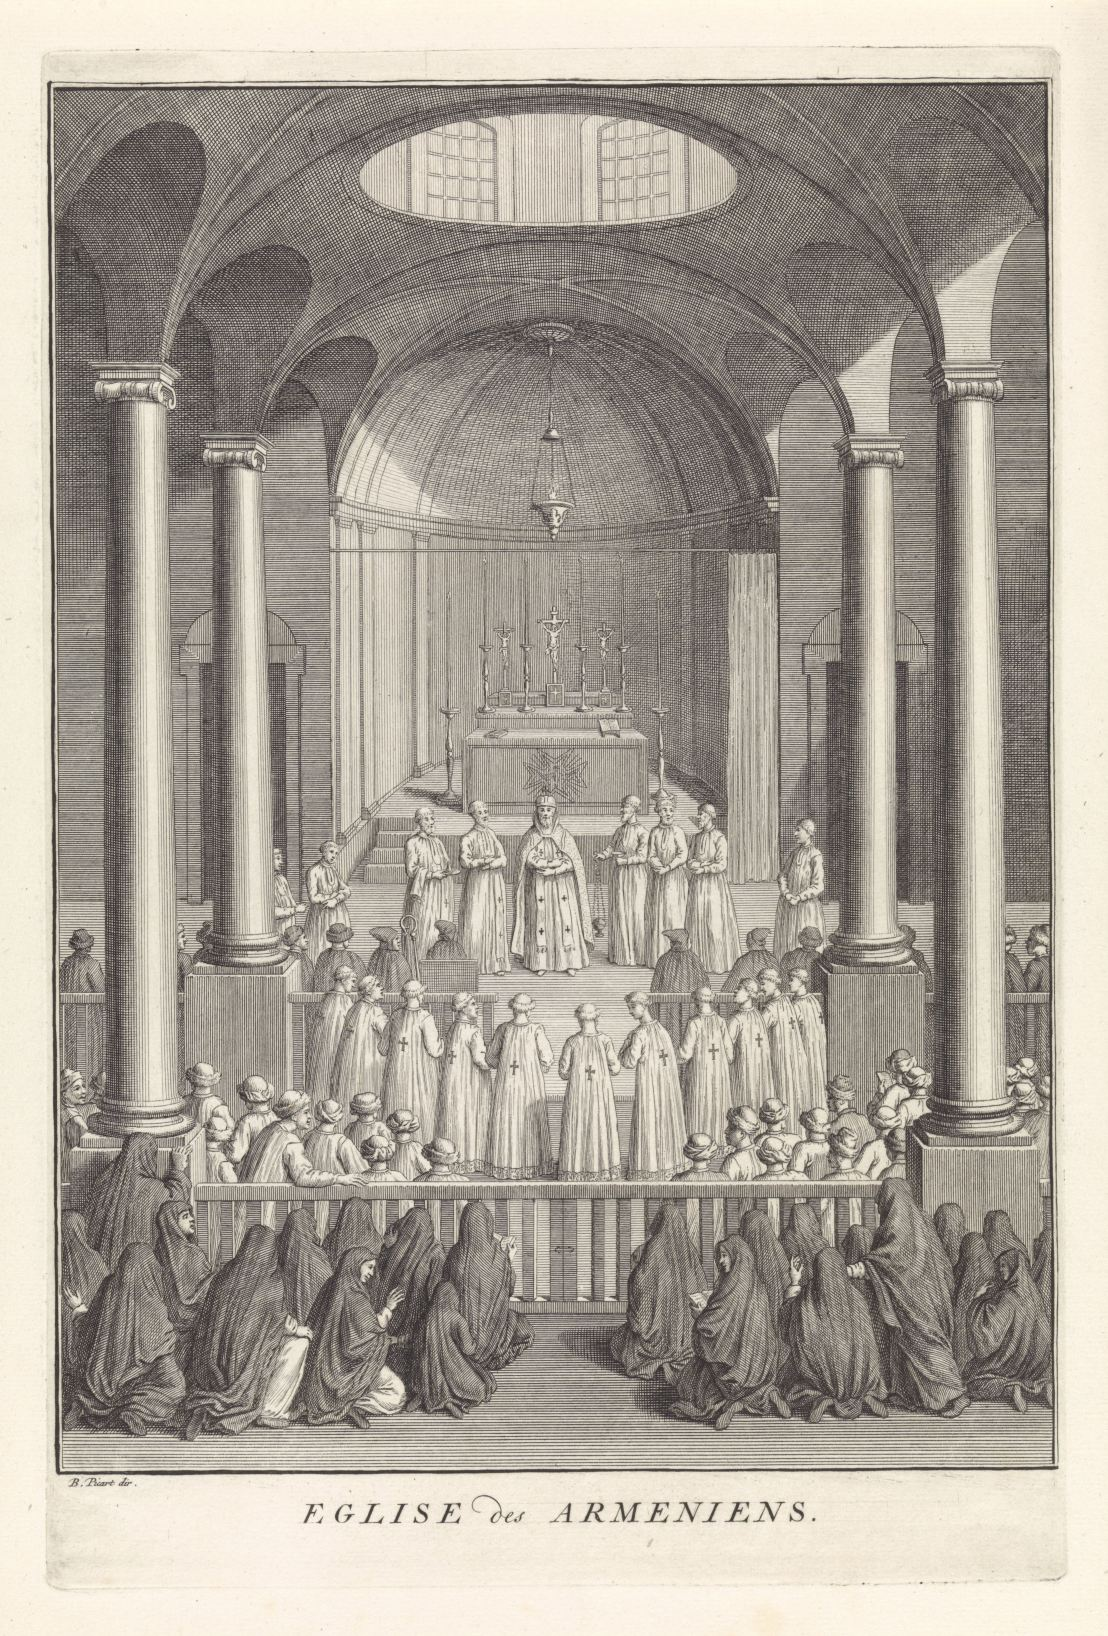 Interior of the Armenian Apostolic church, Bernard Picart (workshop of), 1733